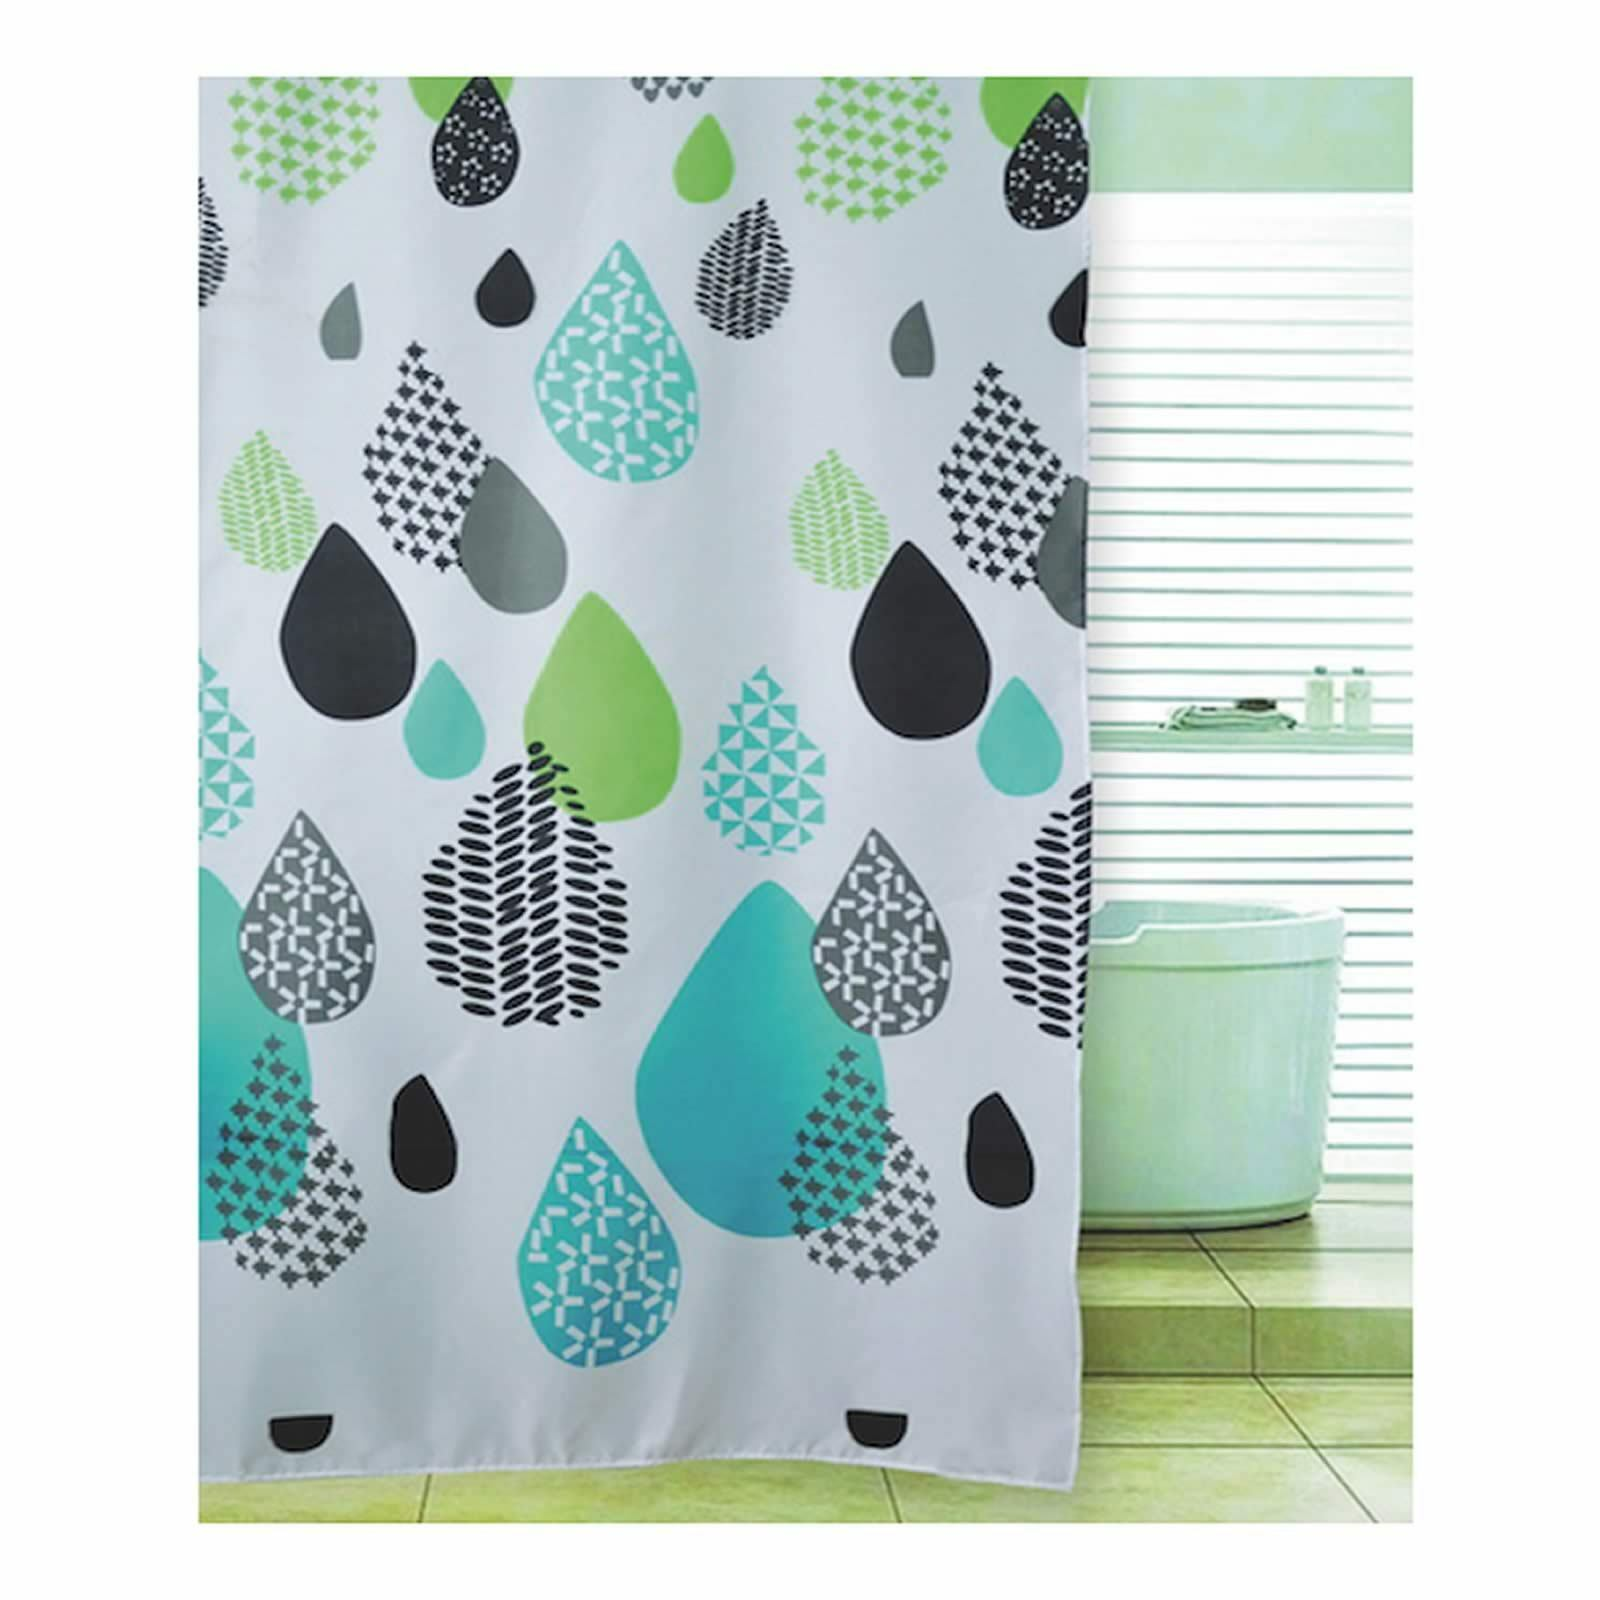 Blue Canyon Various Shower Curtains Petal Flower Ducks Owl Stripe